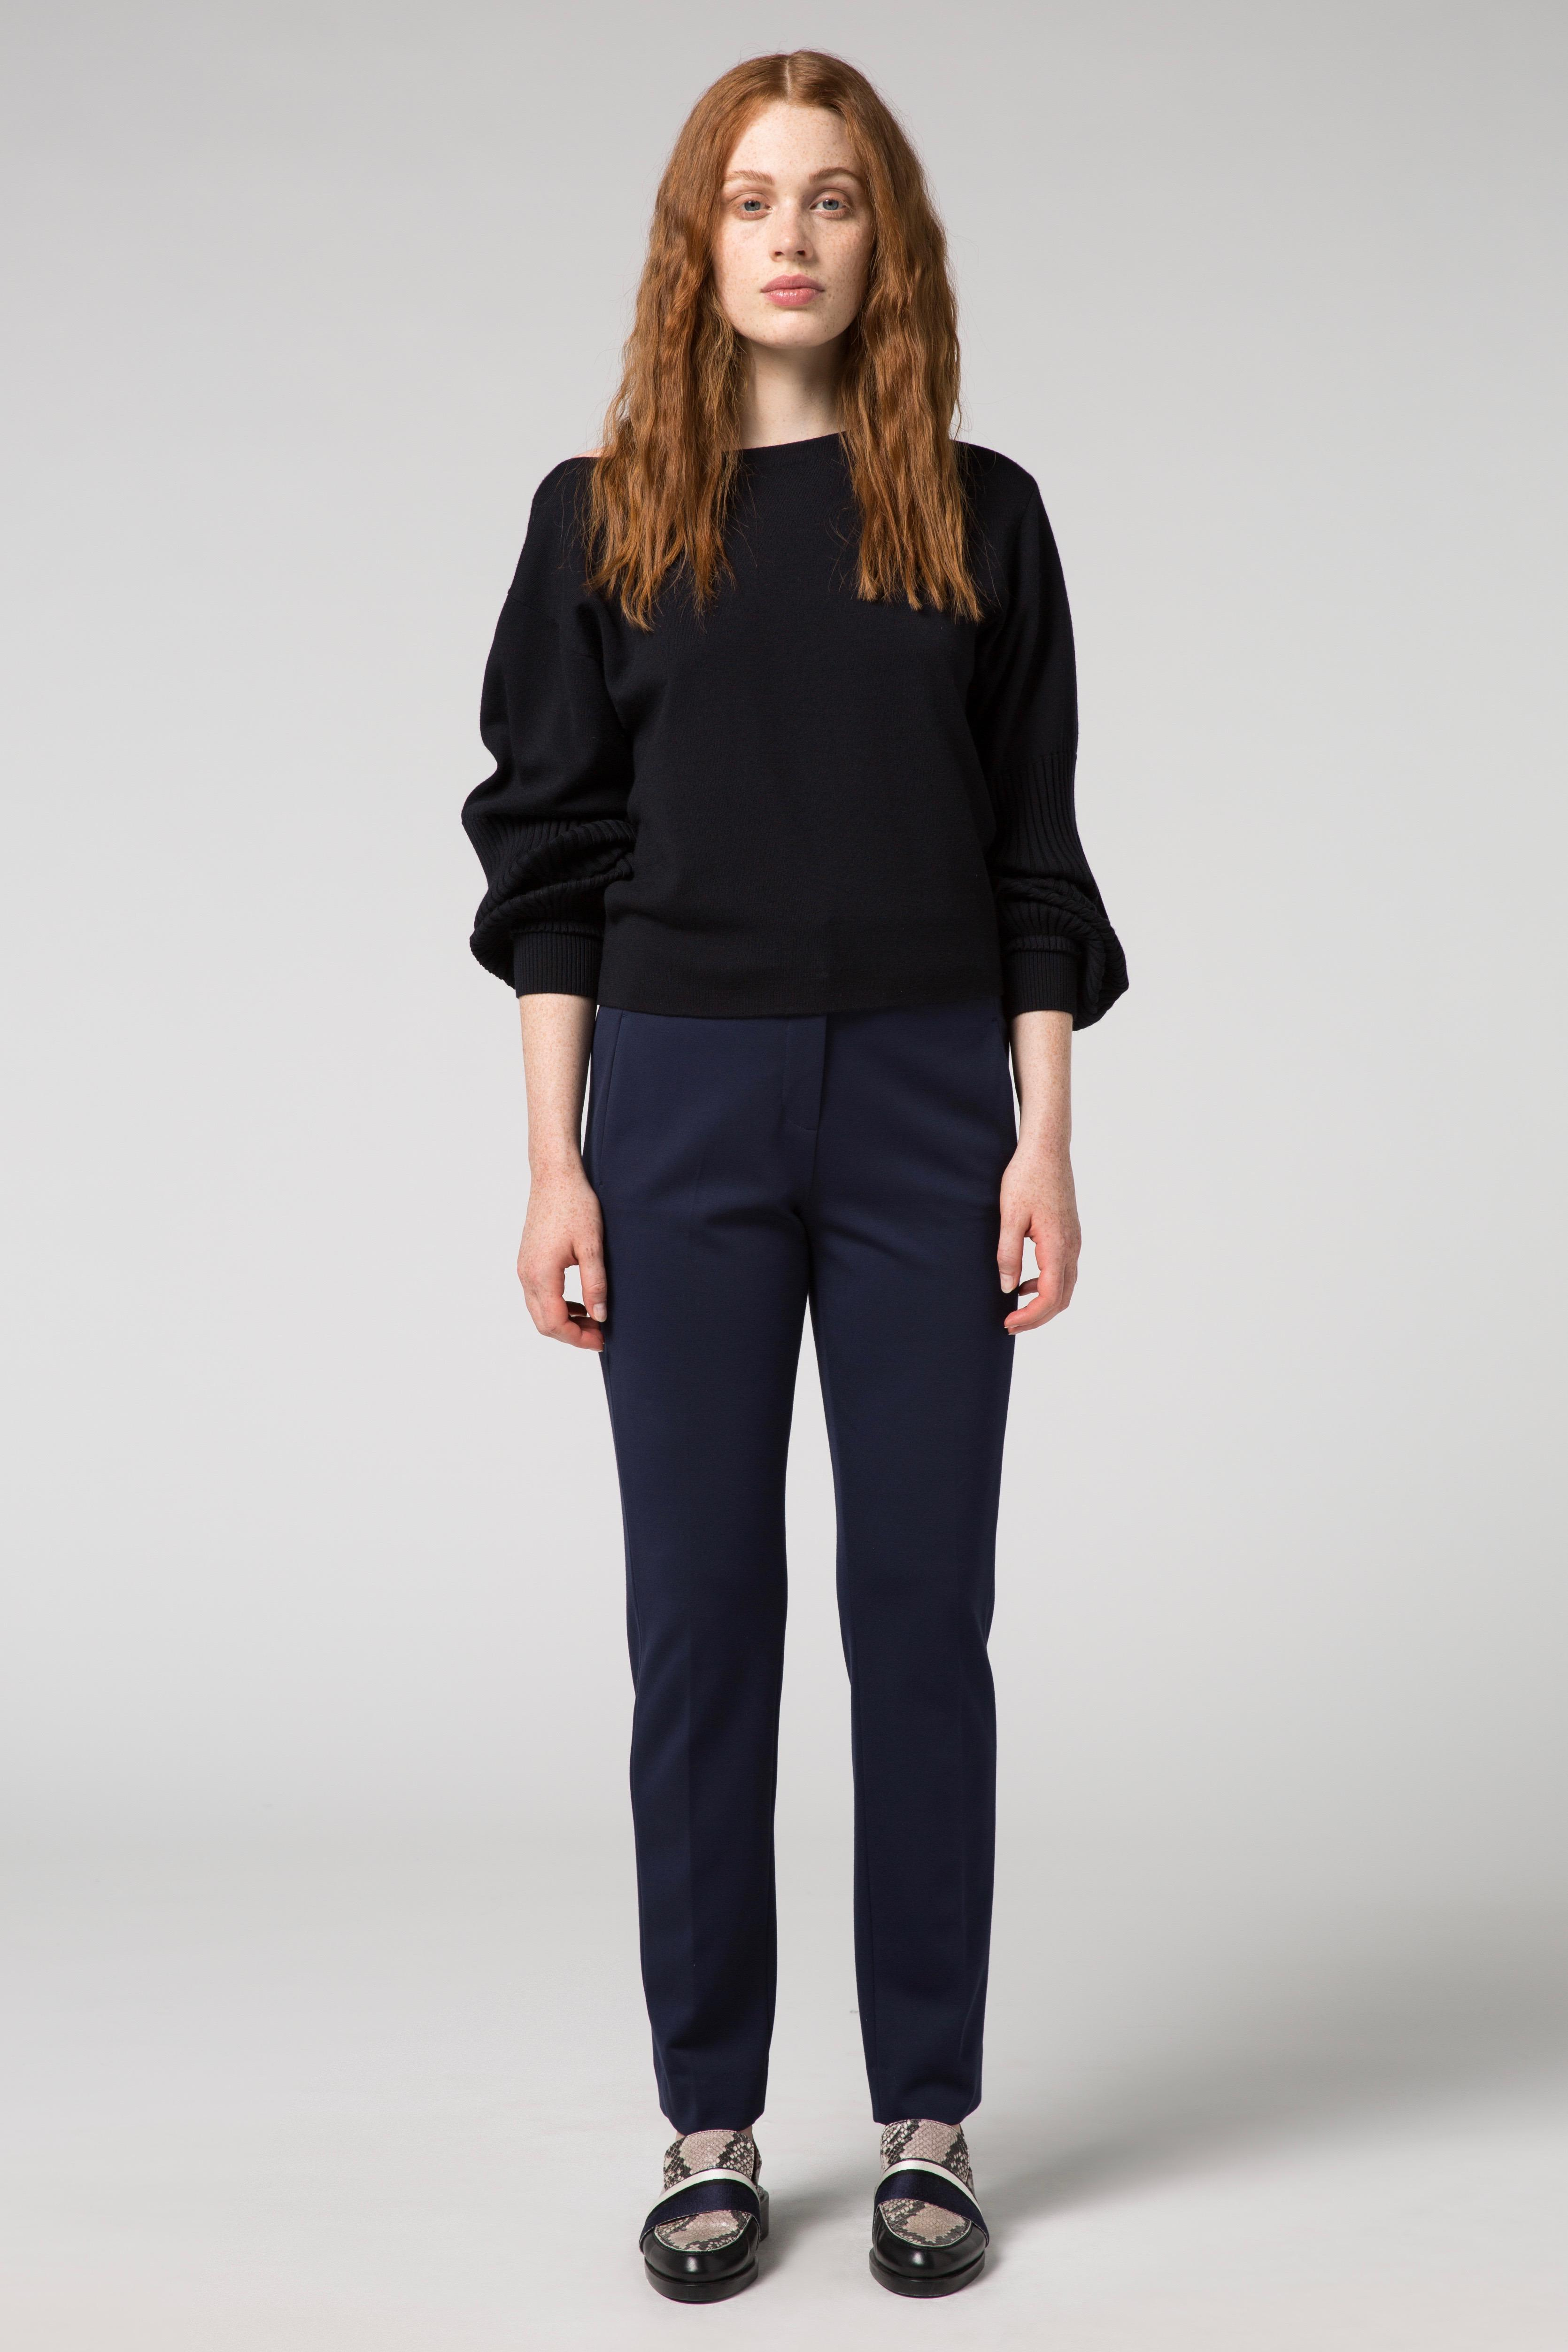 EFFORTLESS CHIC classic pants 2 Dorothee Schumacher